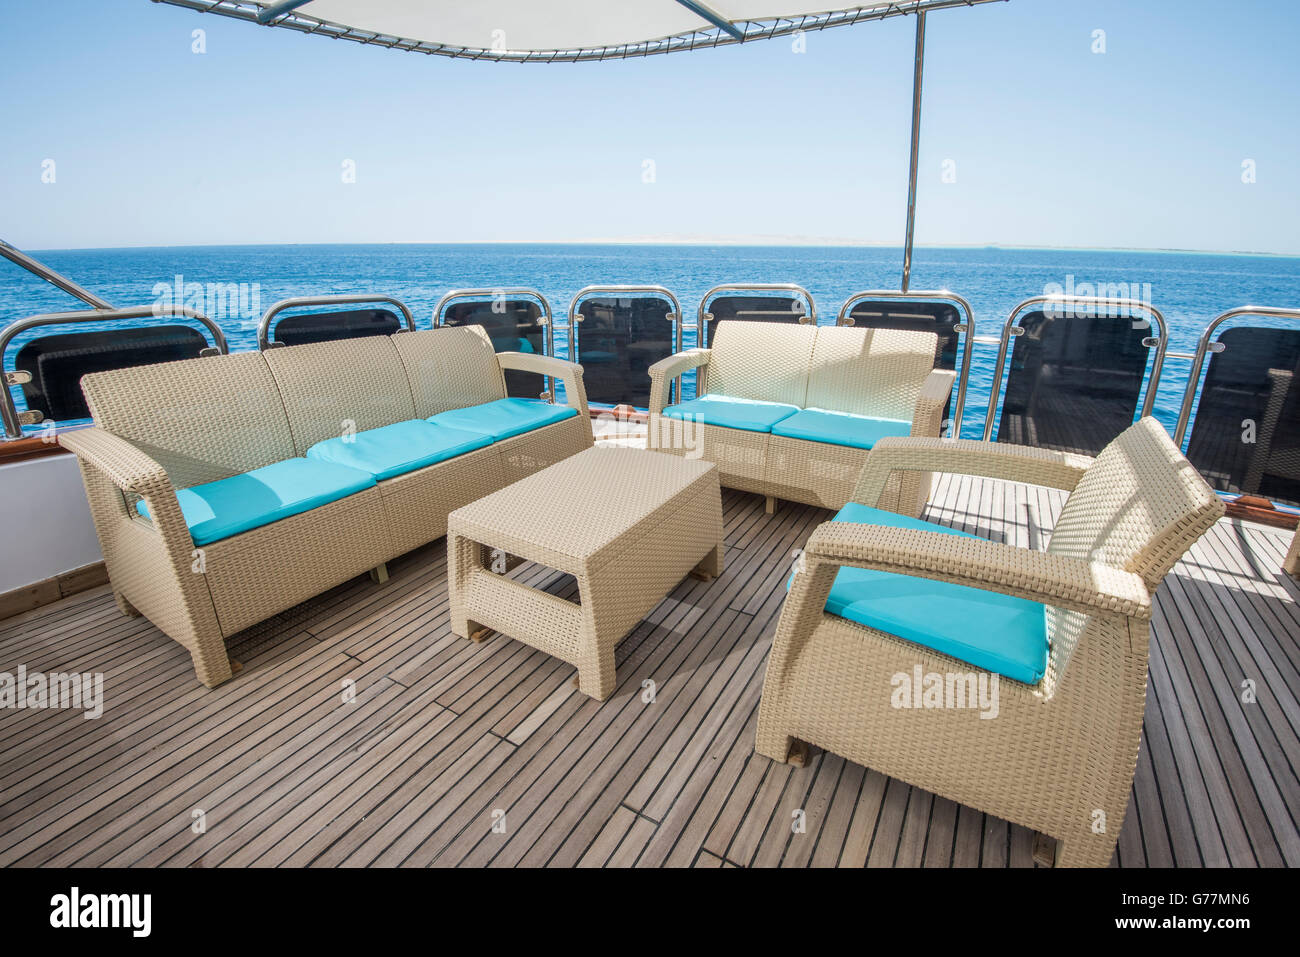 rear teak deck of a large luxury motor yacht with chairs sofa table